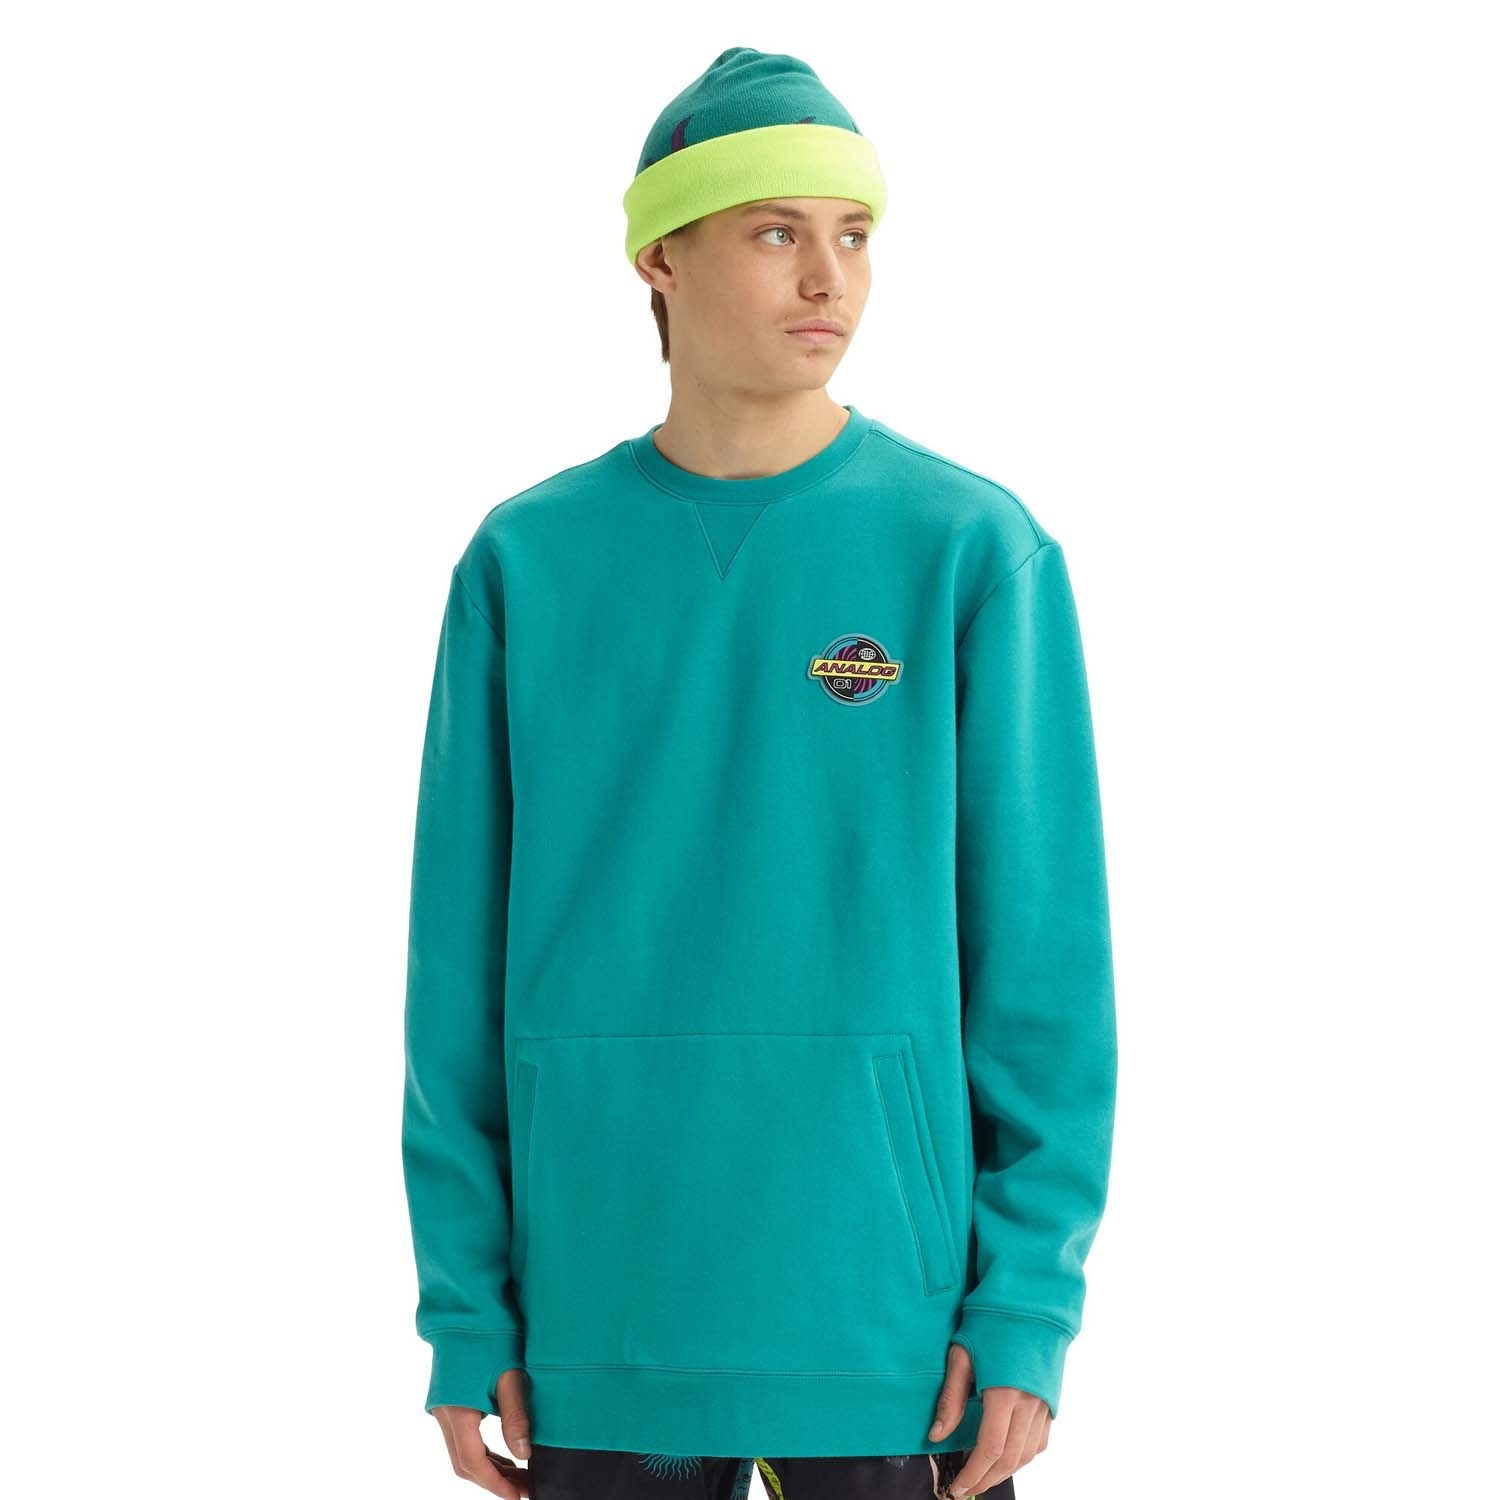 Analog Enclave Crew Sweatshirt Green/Blue Slate 2020